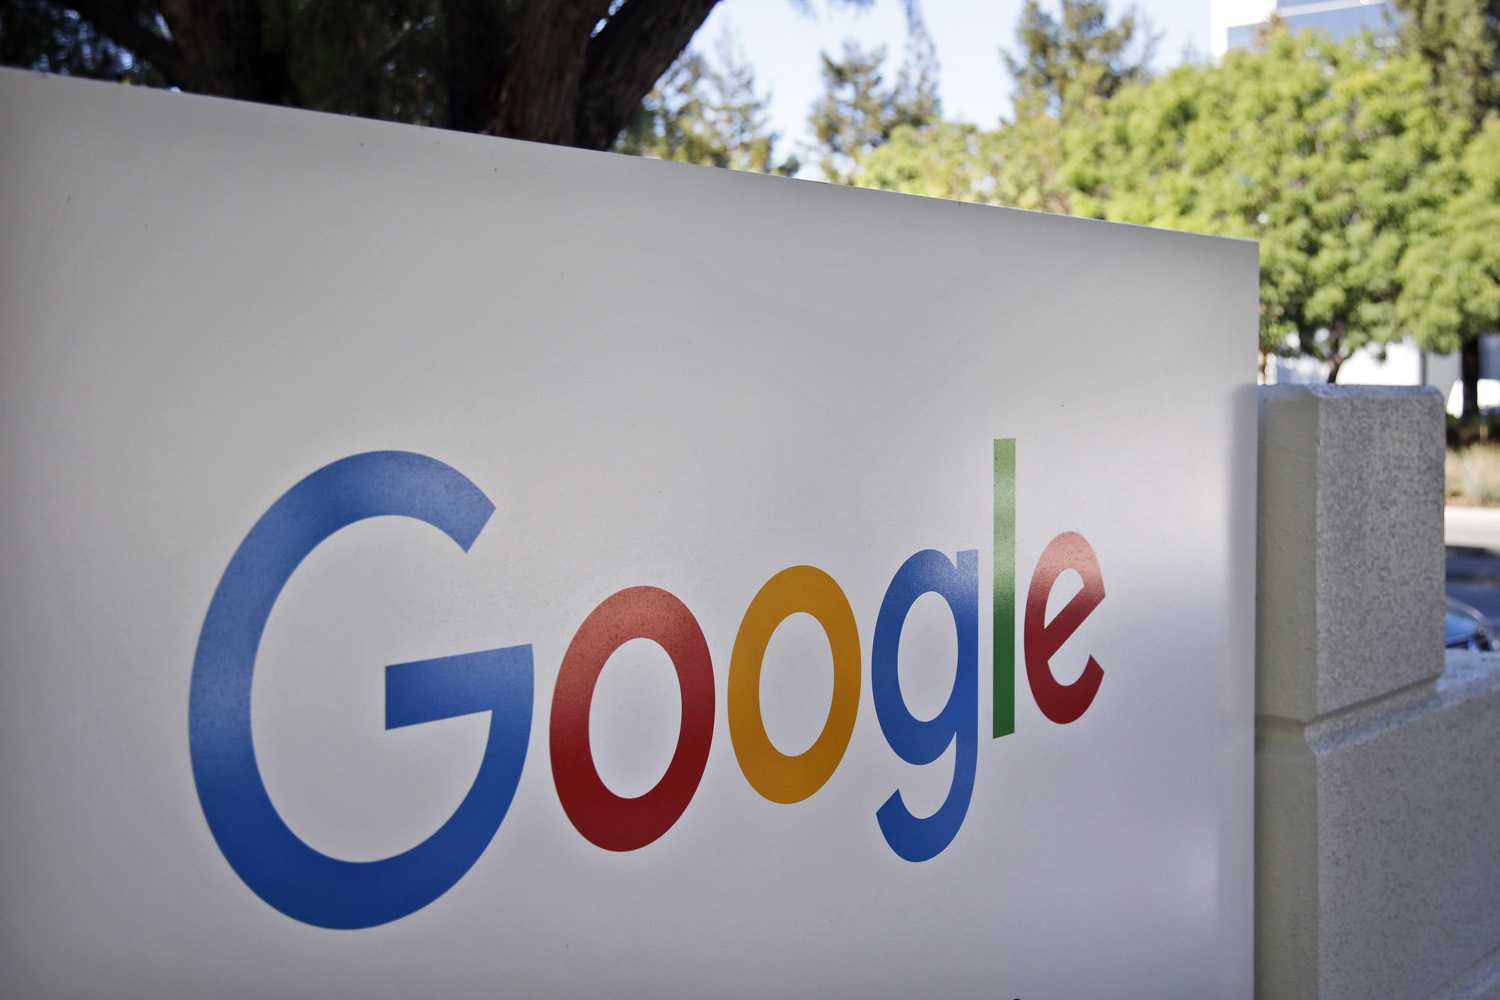 This Oct. 20, 2015, file photo, shows a sign outside Google headquarters in Mountain View, Calif. Google is warning users Wednesday, May 3, 2017, to beware of a phishing scam spread by a fraudulent invitation to share a Google Doc. (Marcio Jose Sanchez/AP)